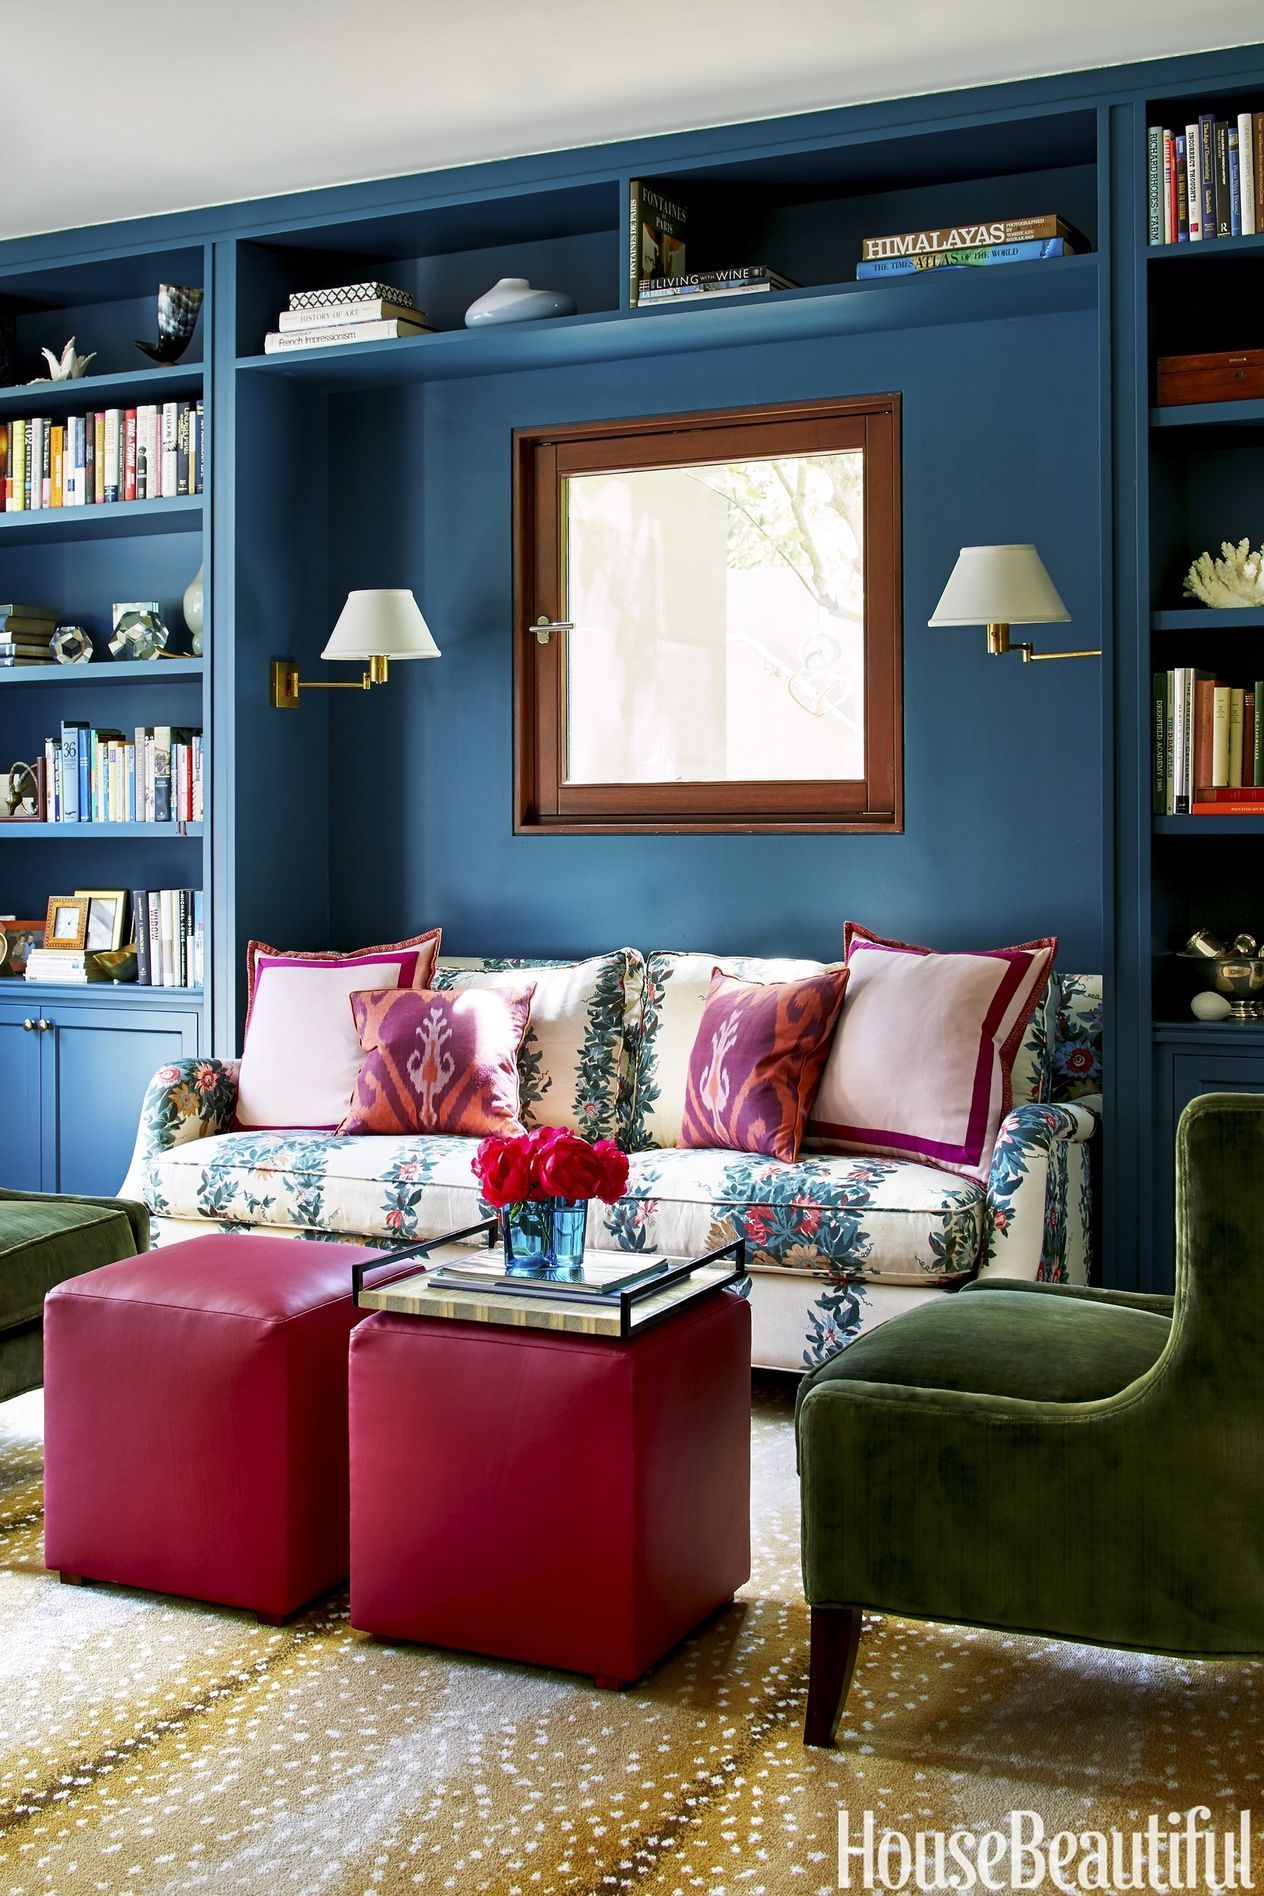 Excellent Decorating Ideas For Small Living Rooms Design